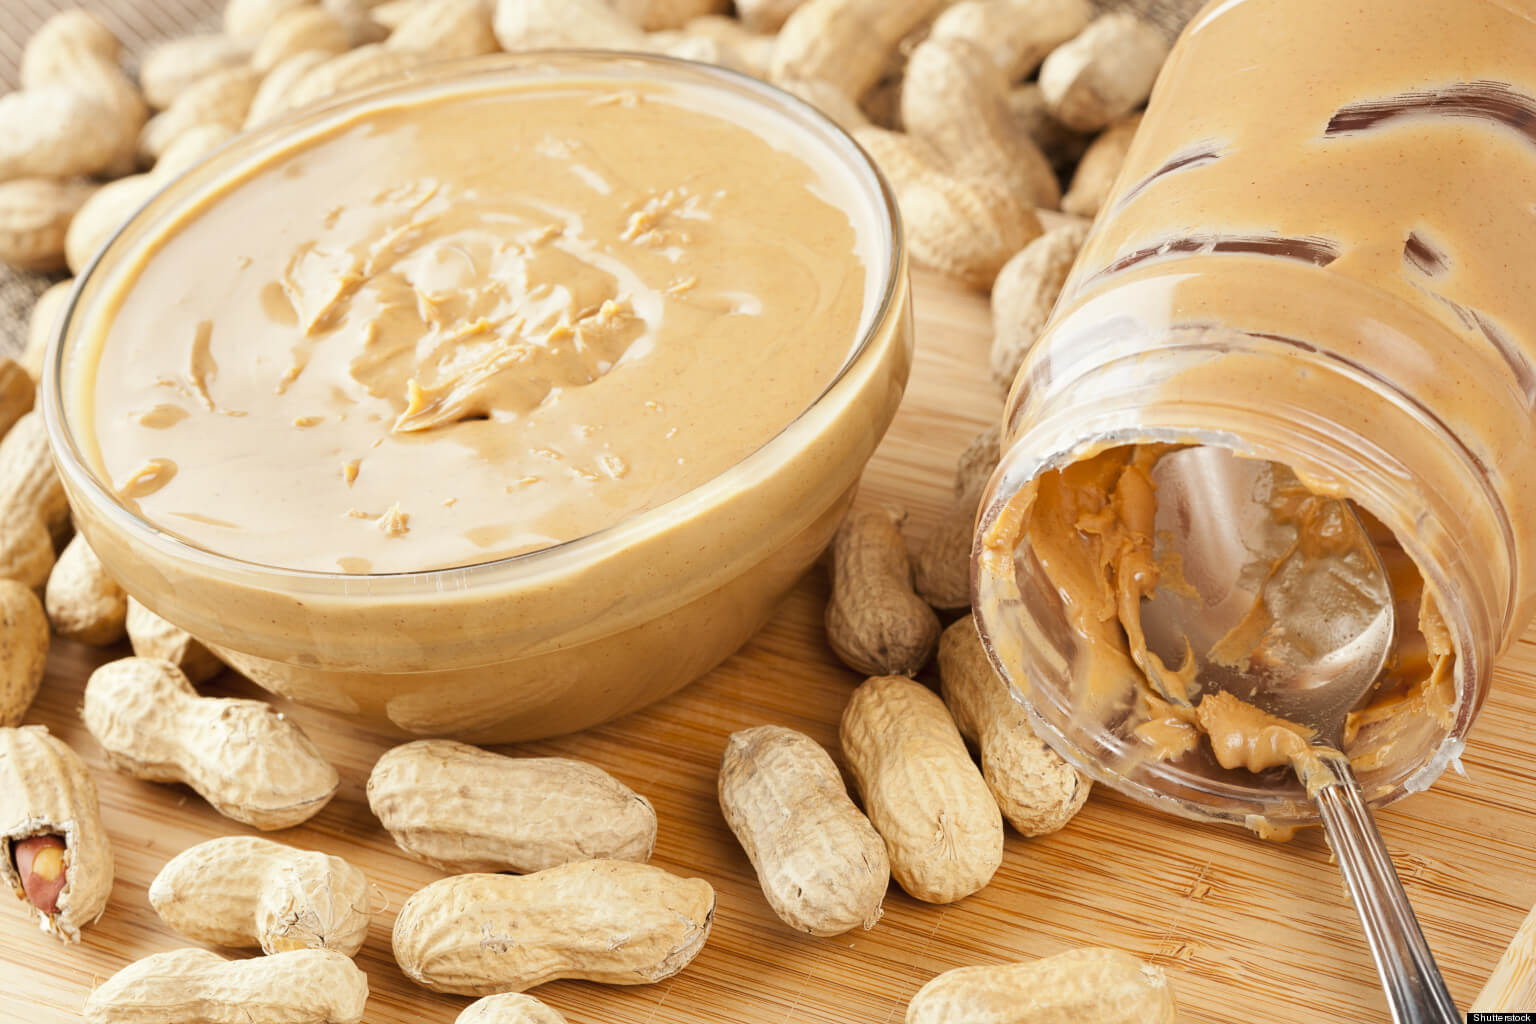 National Peanut Butter Day - January 24